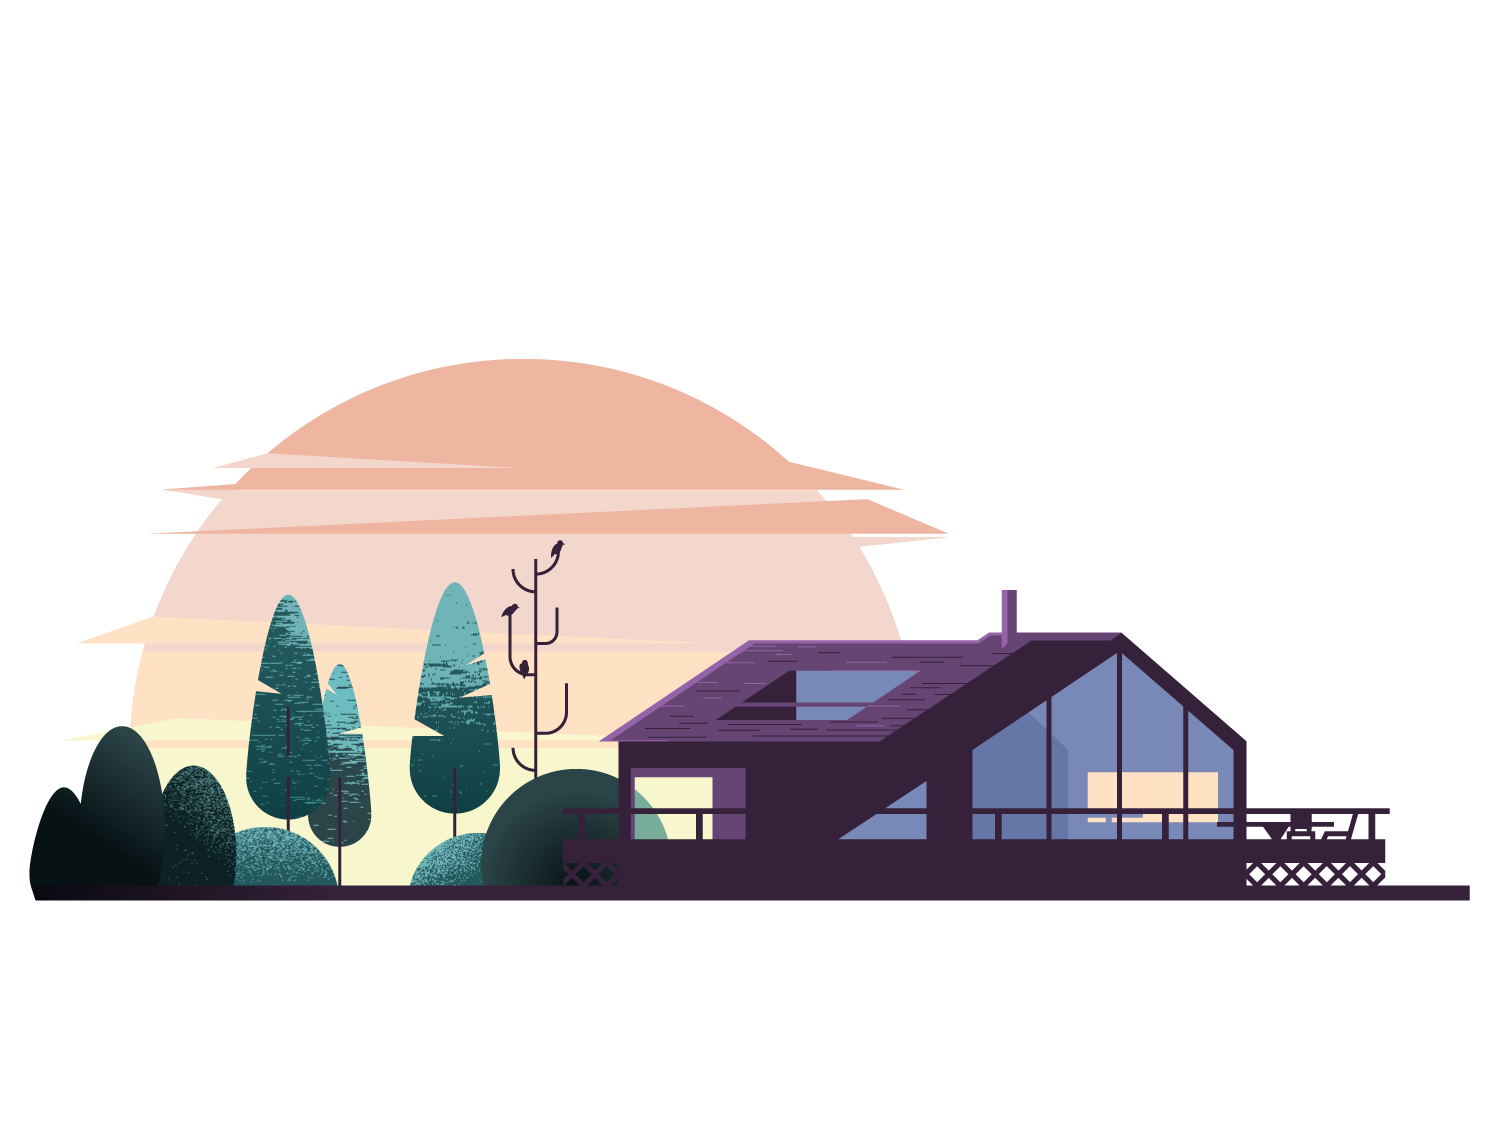 Weekend plans. getaway cabin vector vacation forest sunrise illustration practice texture shape shadow